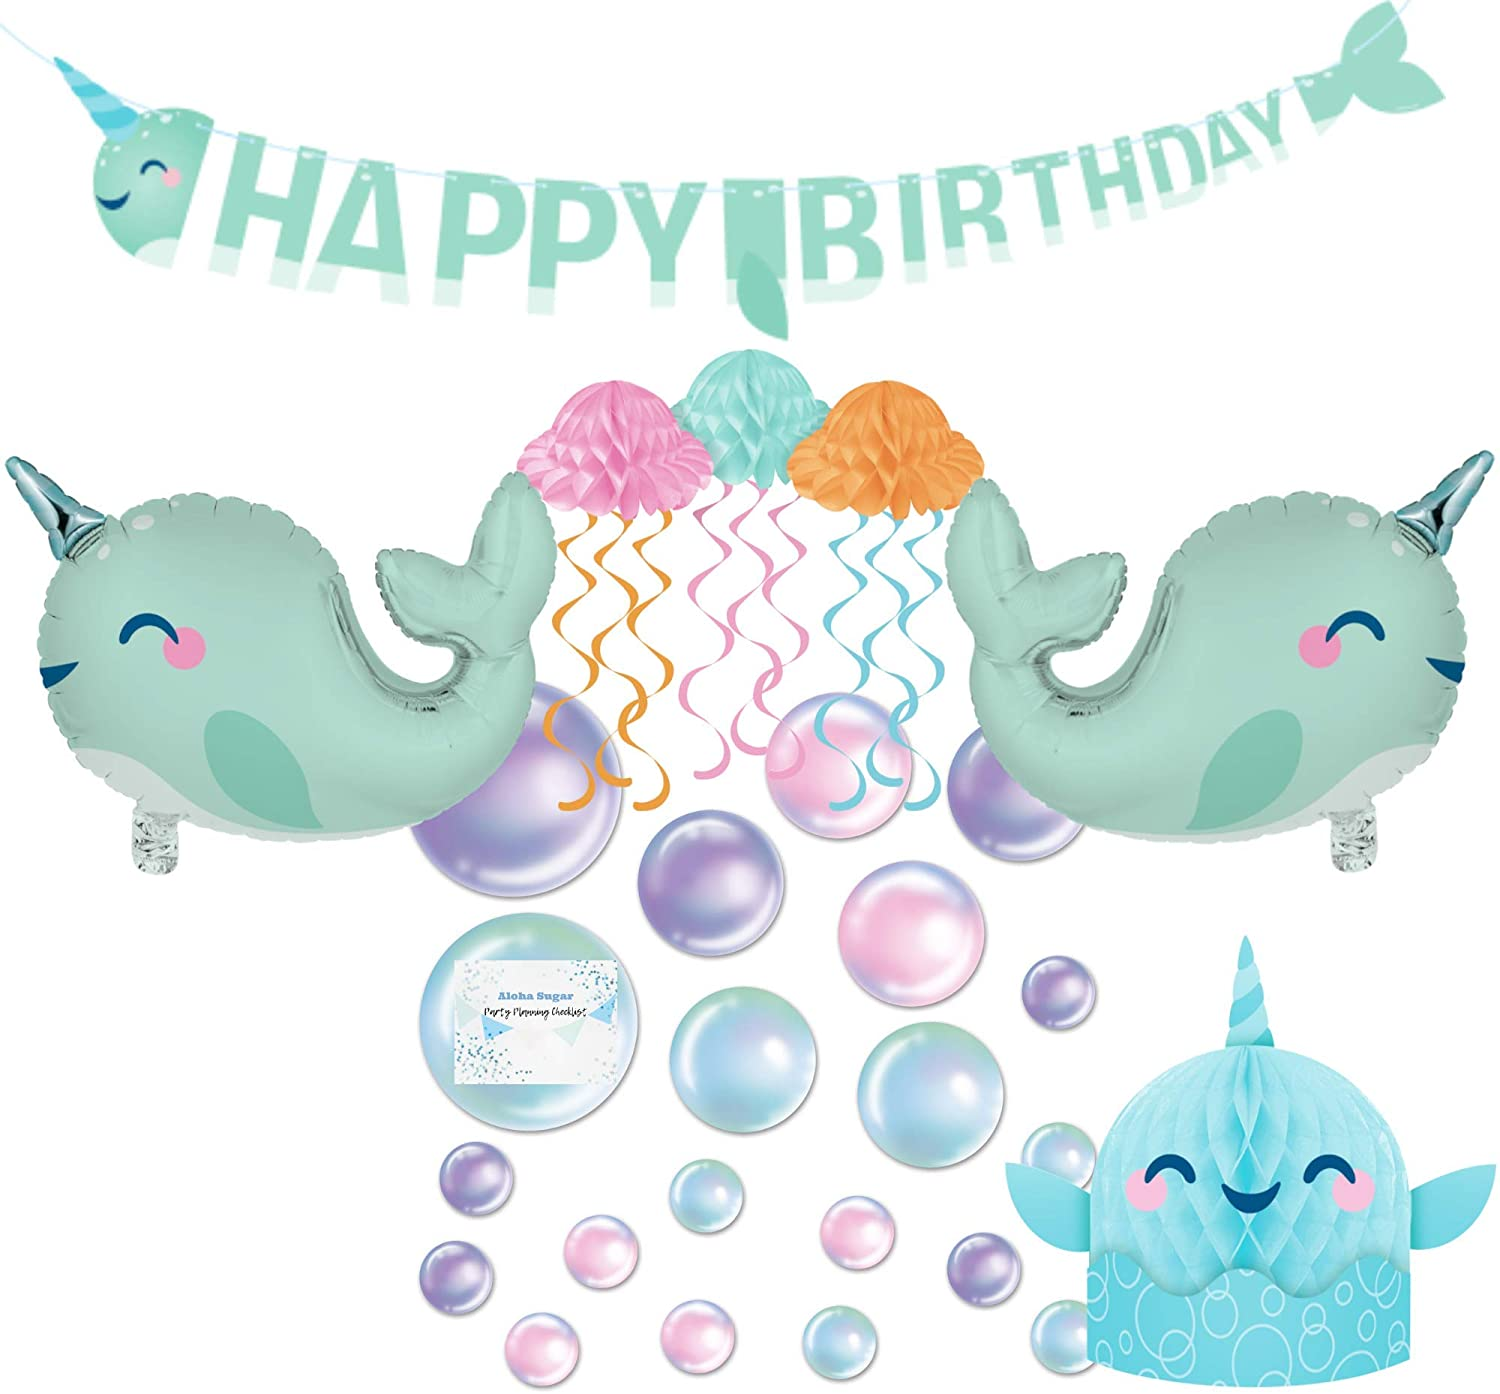 Narwhal Party Supplies and Decorations - Includes Narwhal Birthday Banner, Centerpiece, Jellyfish, Narwhal Balloons and Bubbles - Perfect Narwhal Birthday Party Decorations and Narwhal Birthday Party Supplies!